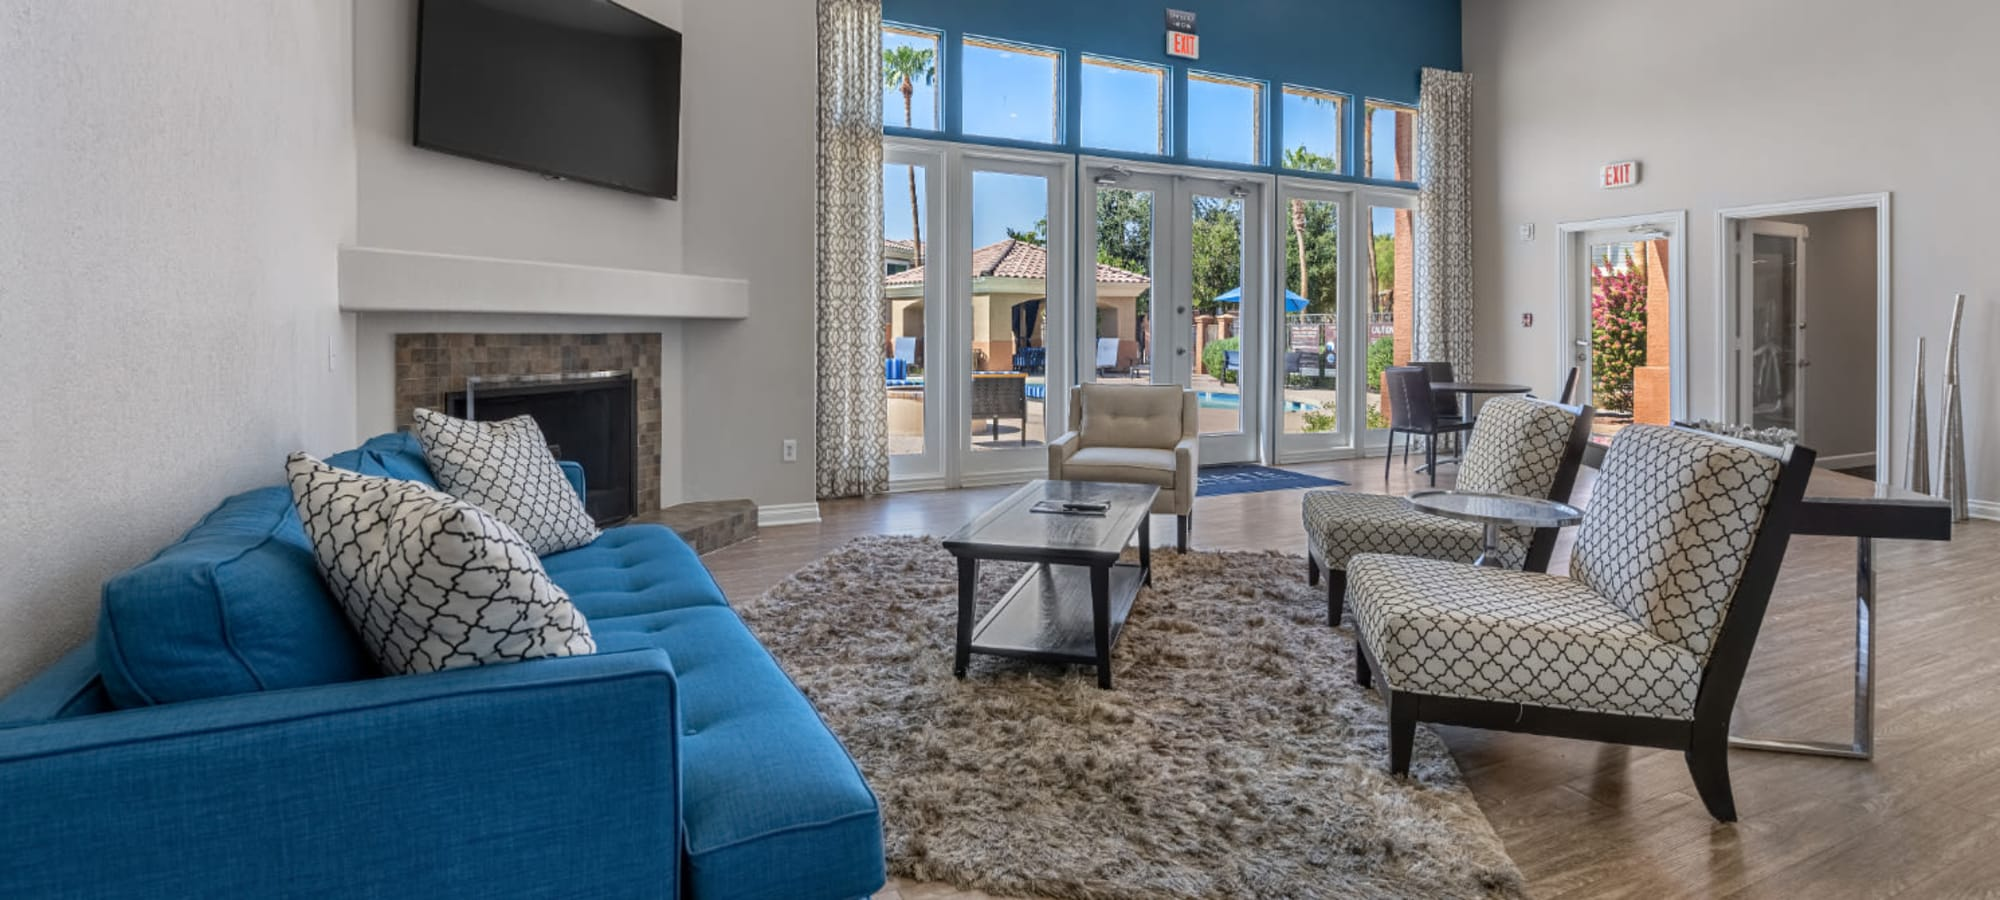 Virtual tours of Alante at the Islands in Chandler, Arizona